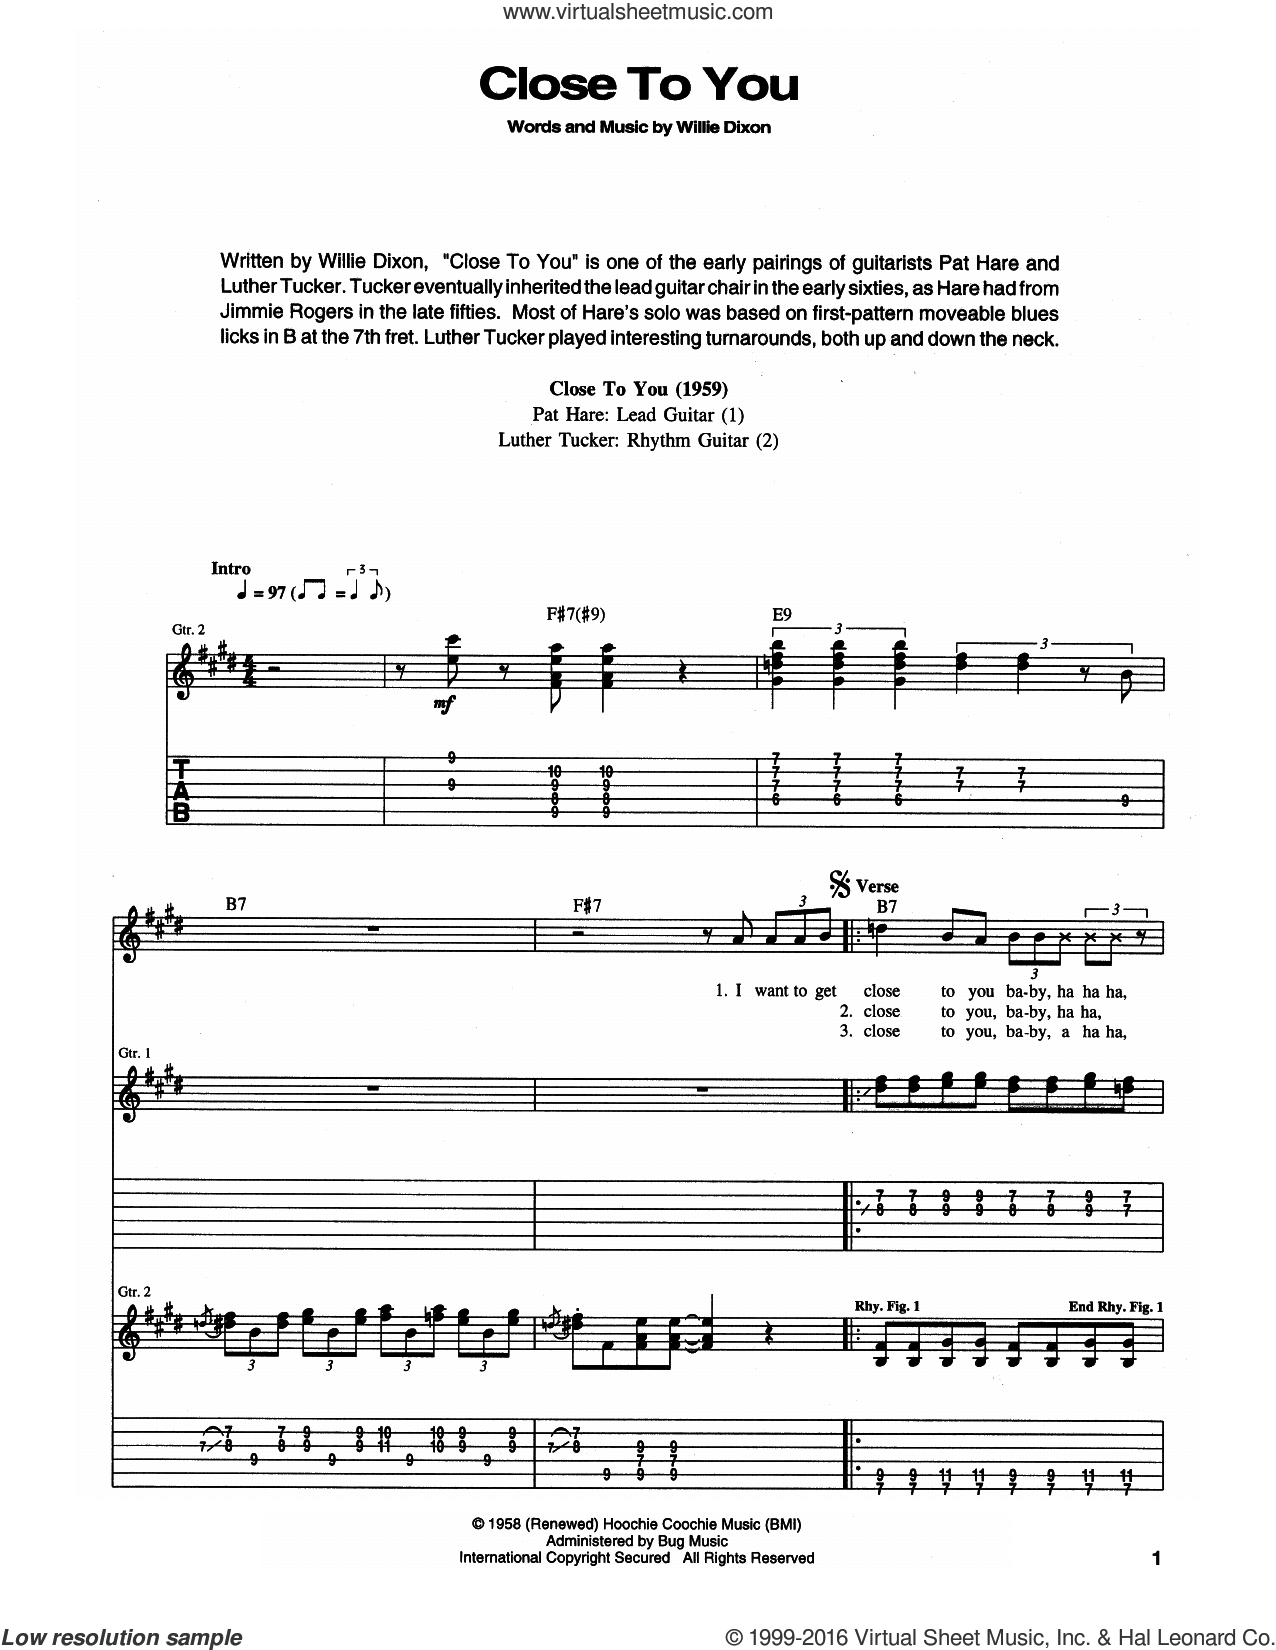 Close To You (I Wanna Get) sheet music for guitar (tablature) by Muddy Waters and Willie Dixon, intermediate guitar (tablature). Score Image Preview.